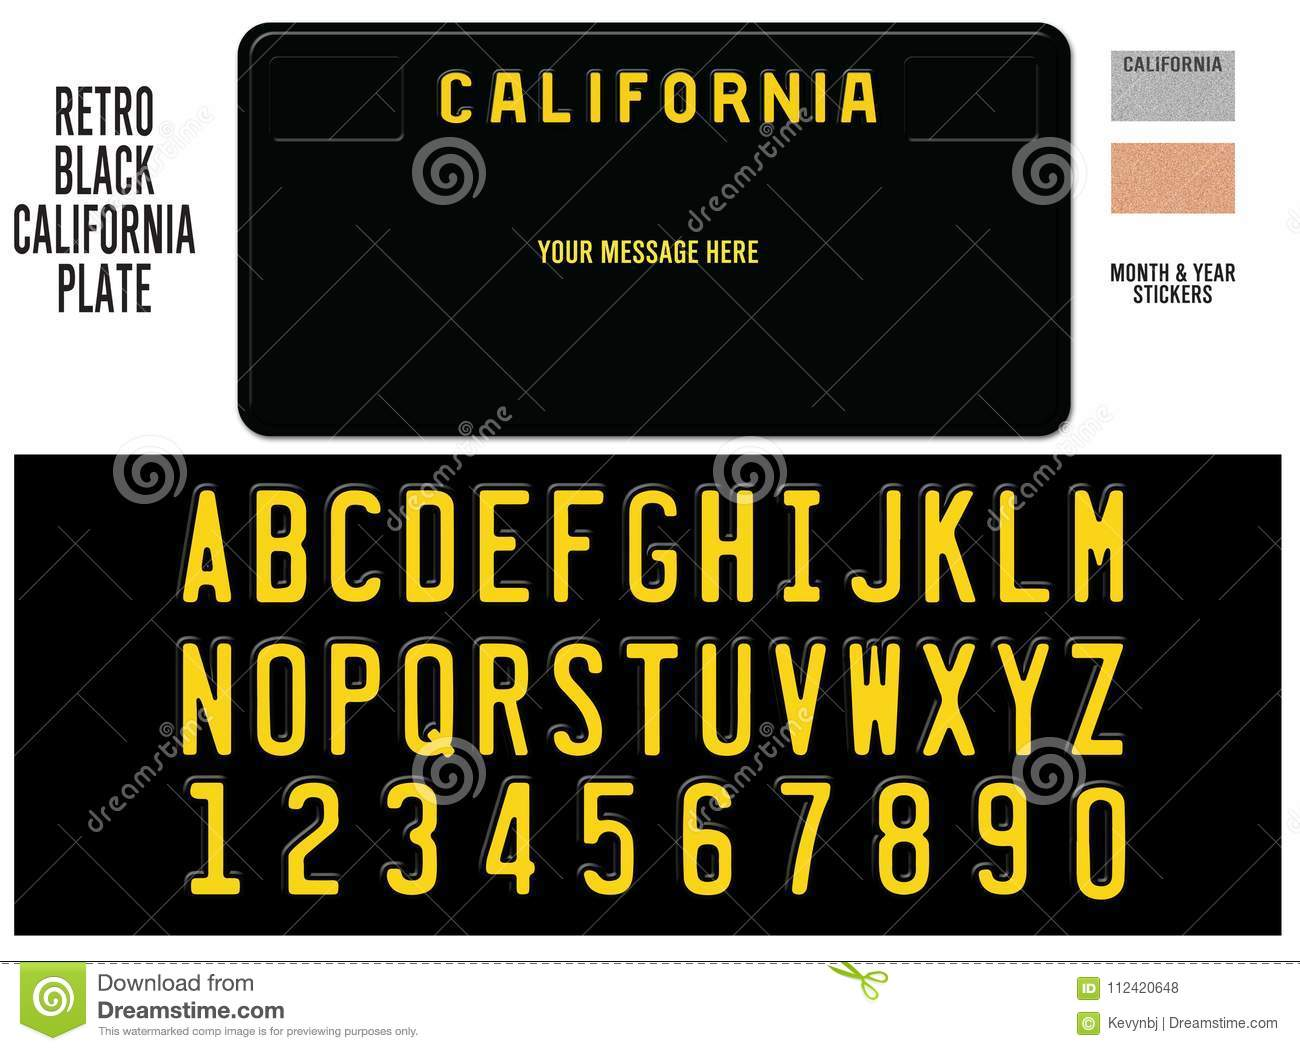 California License Plate Black Retro Design Stock Illustration